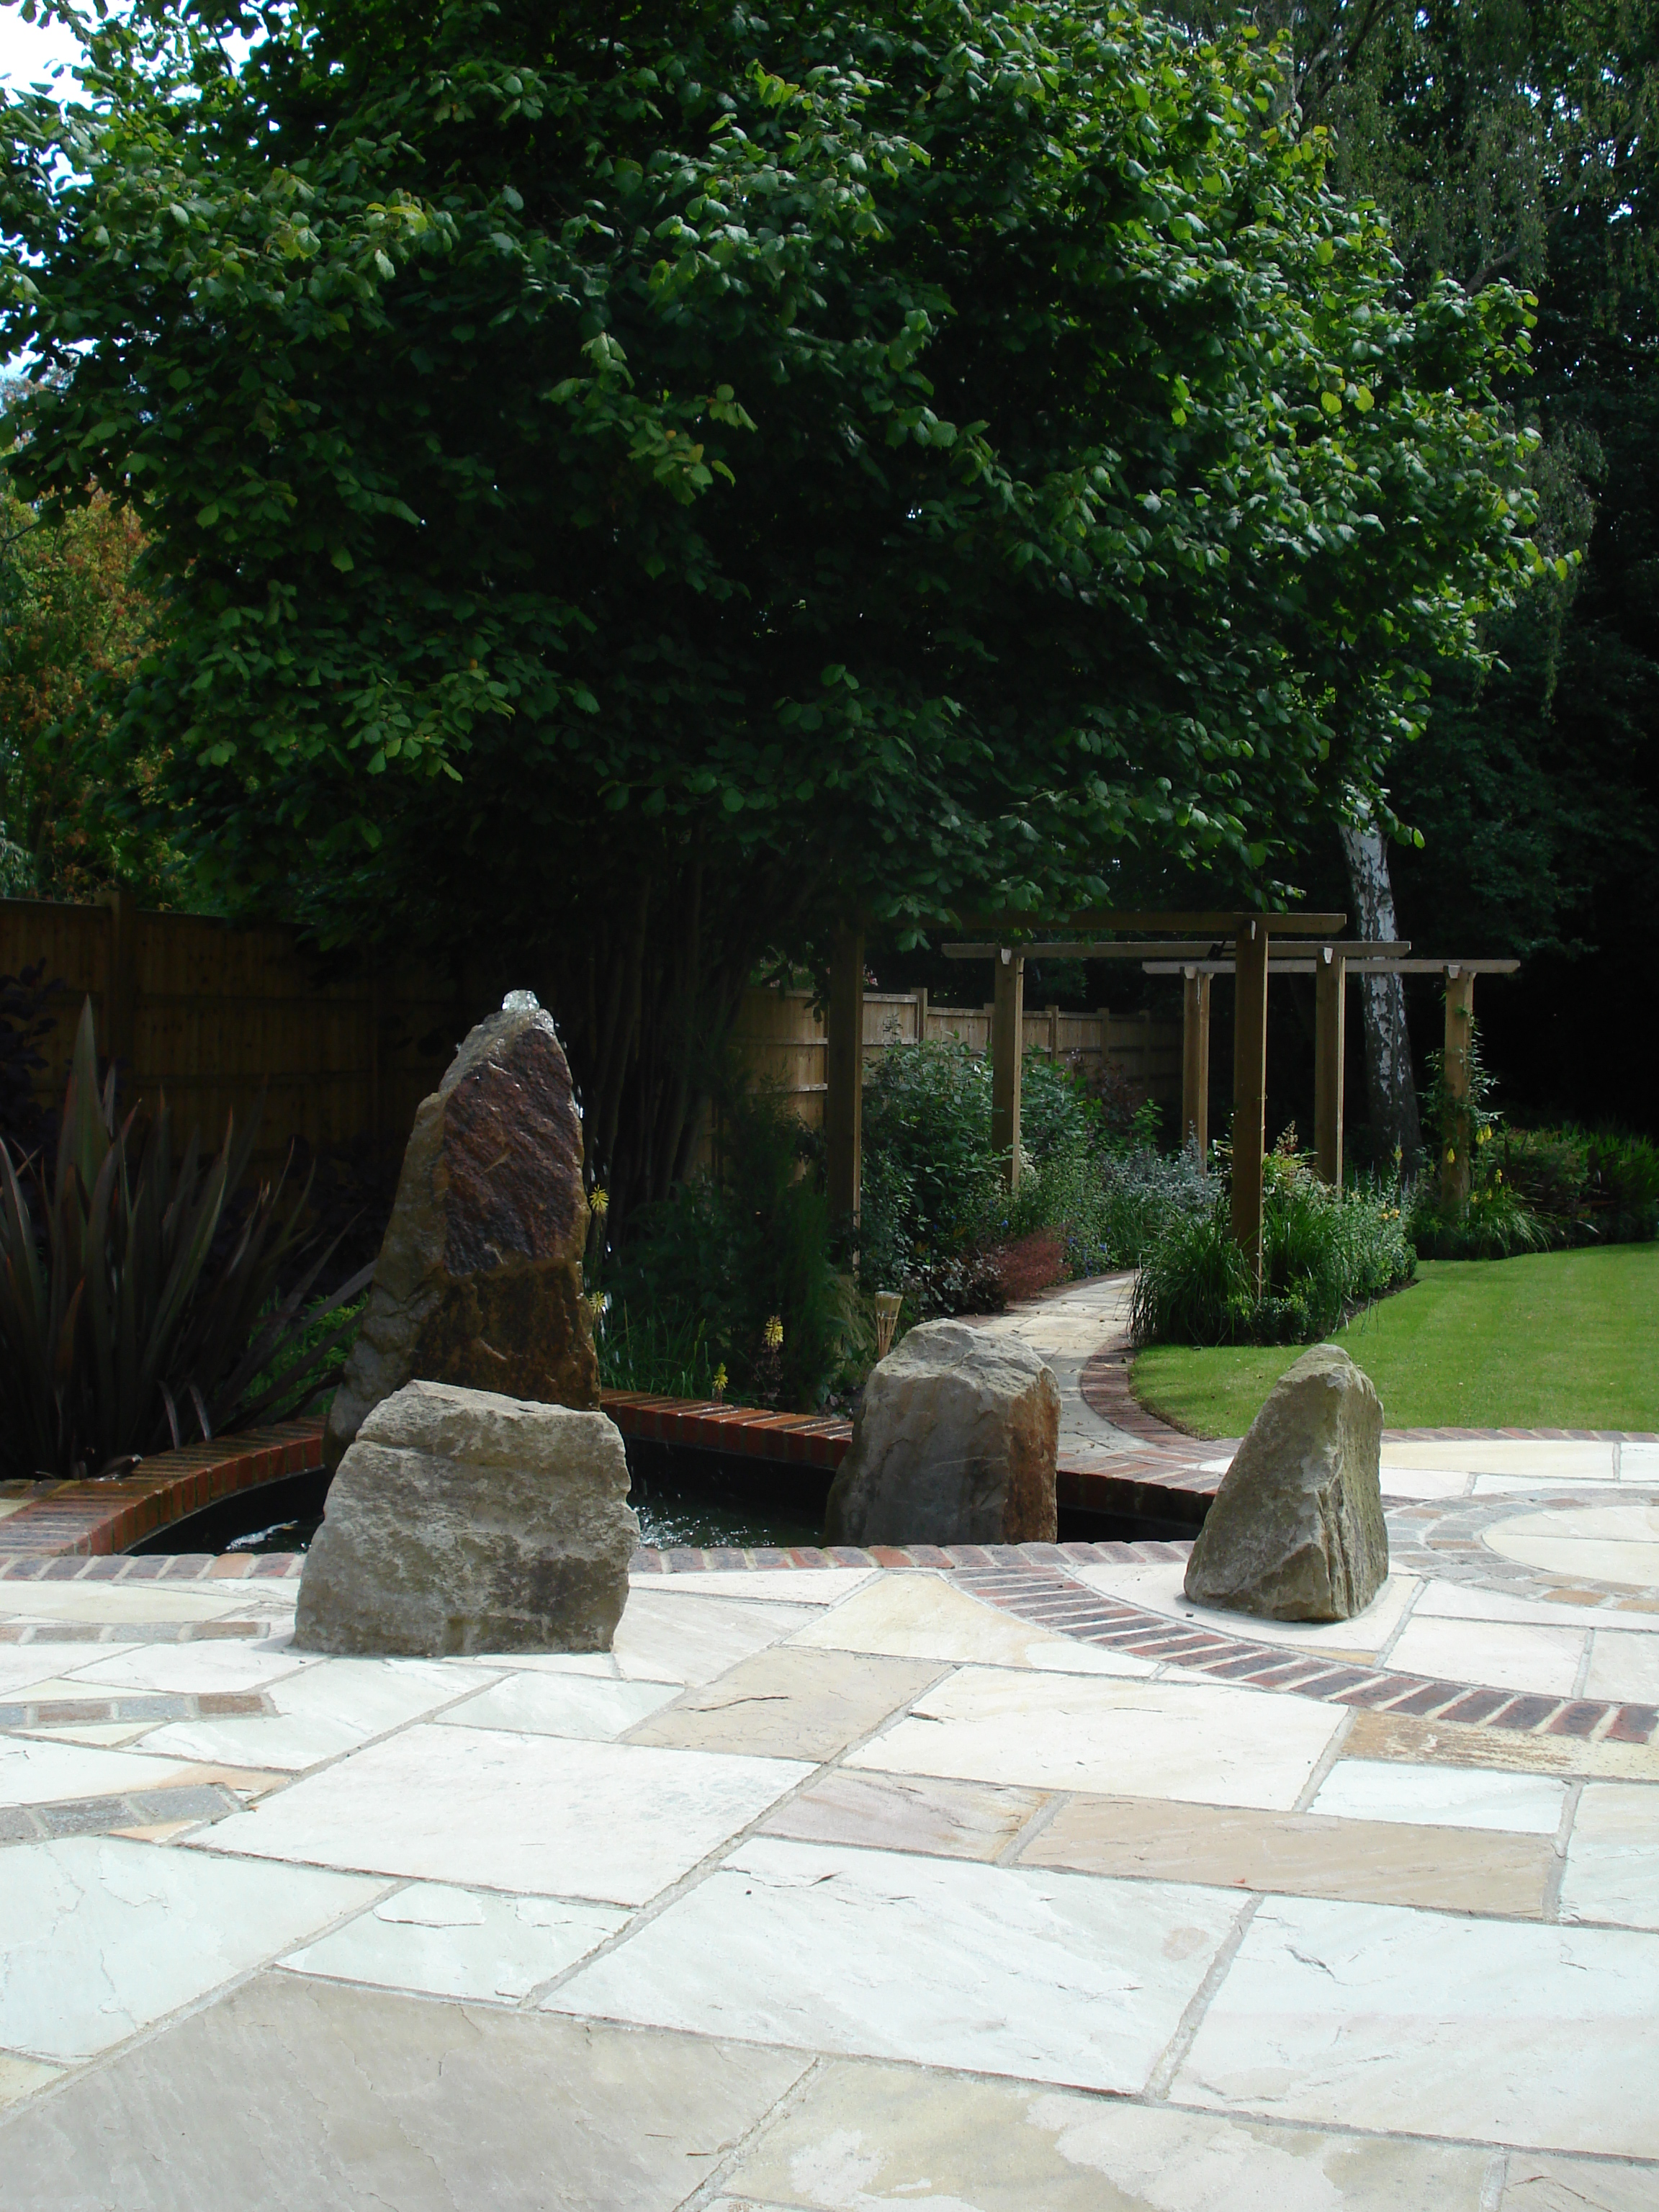 Rear Garden - Details are important no matter what size the garden